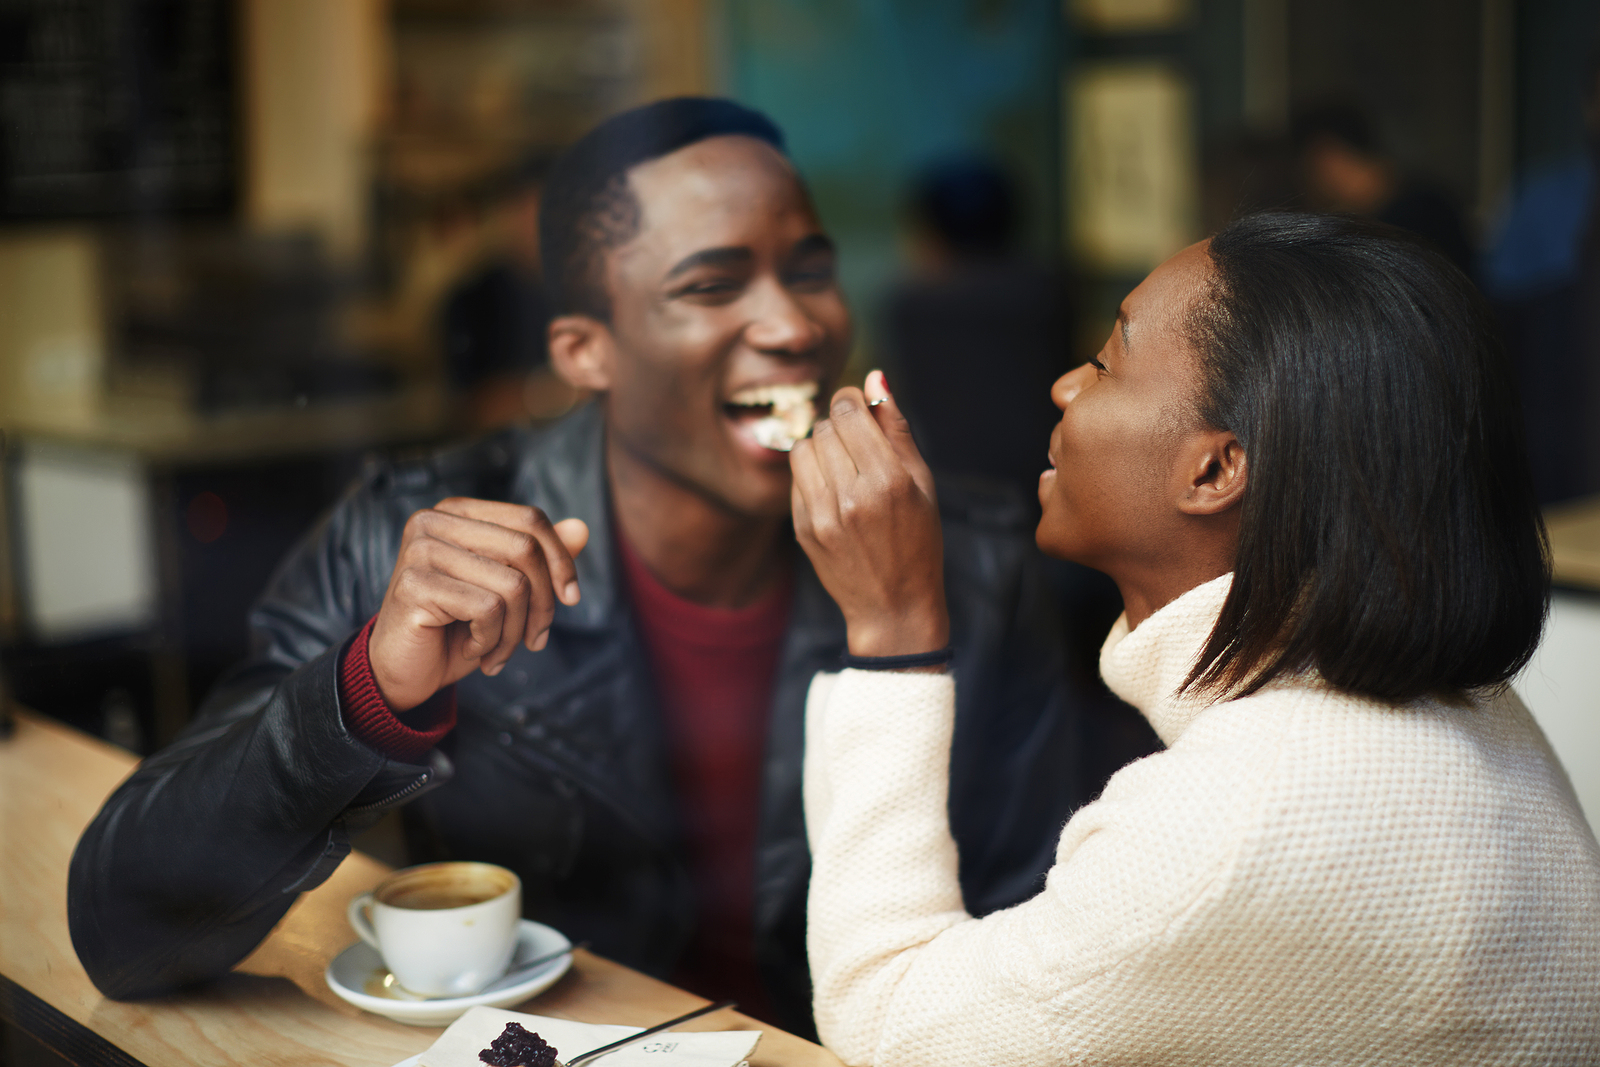 Image of a black young couple at a coffee shop, the woman is giving a spoonfull of food to her friend and he is smiling.